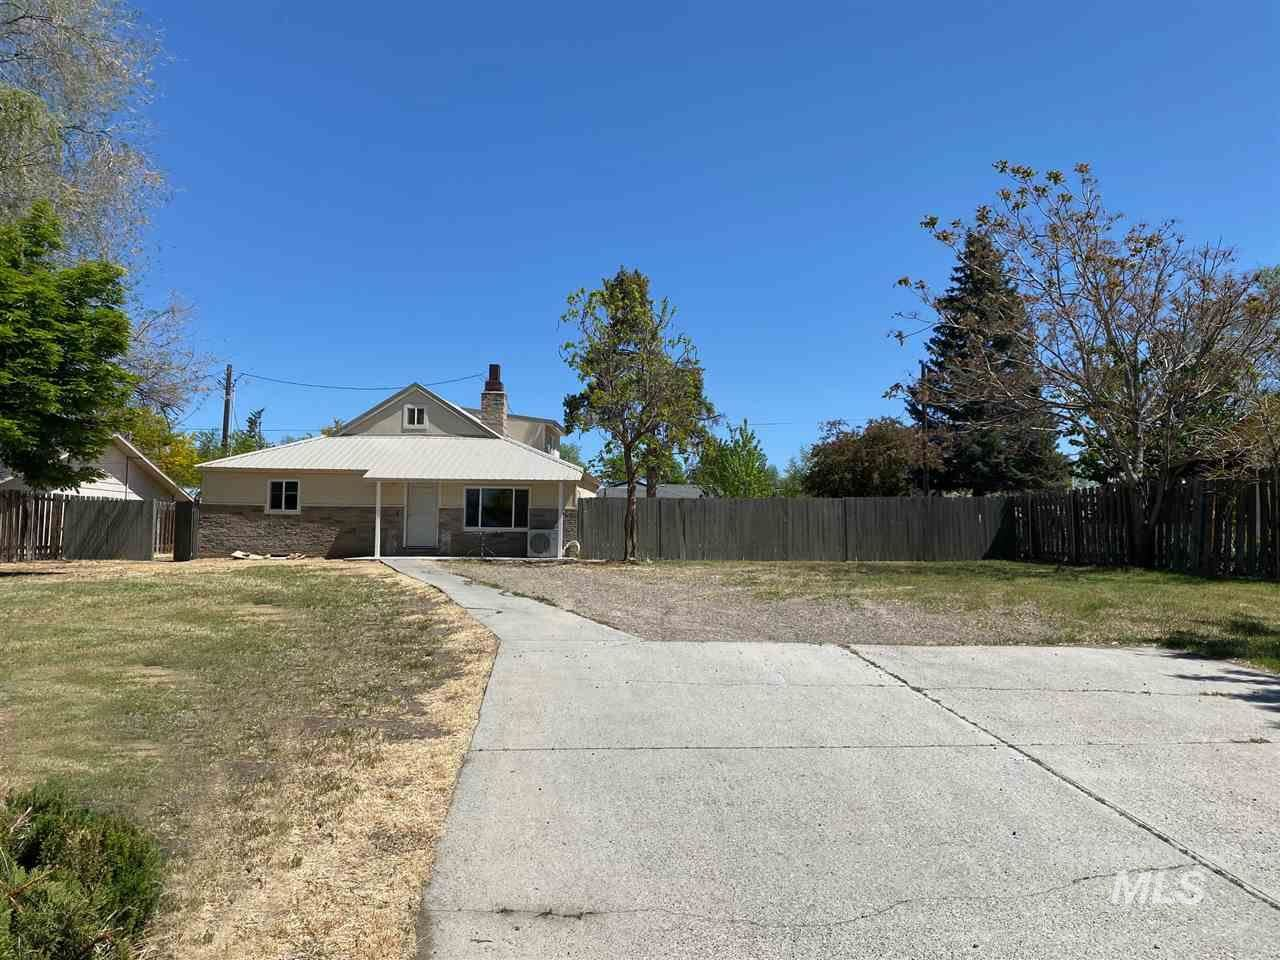 Photo of 560 NW 5th Street, Ontario, OR 97914 (MLS # 98766153)